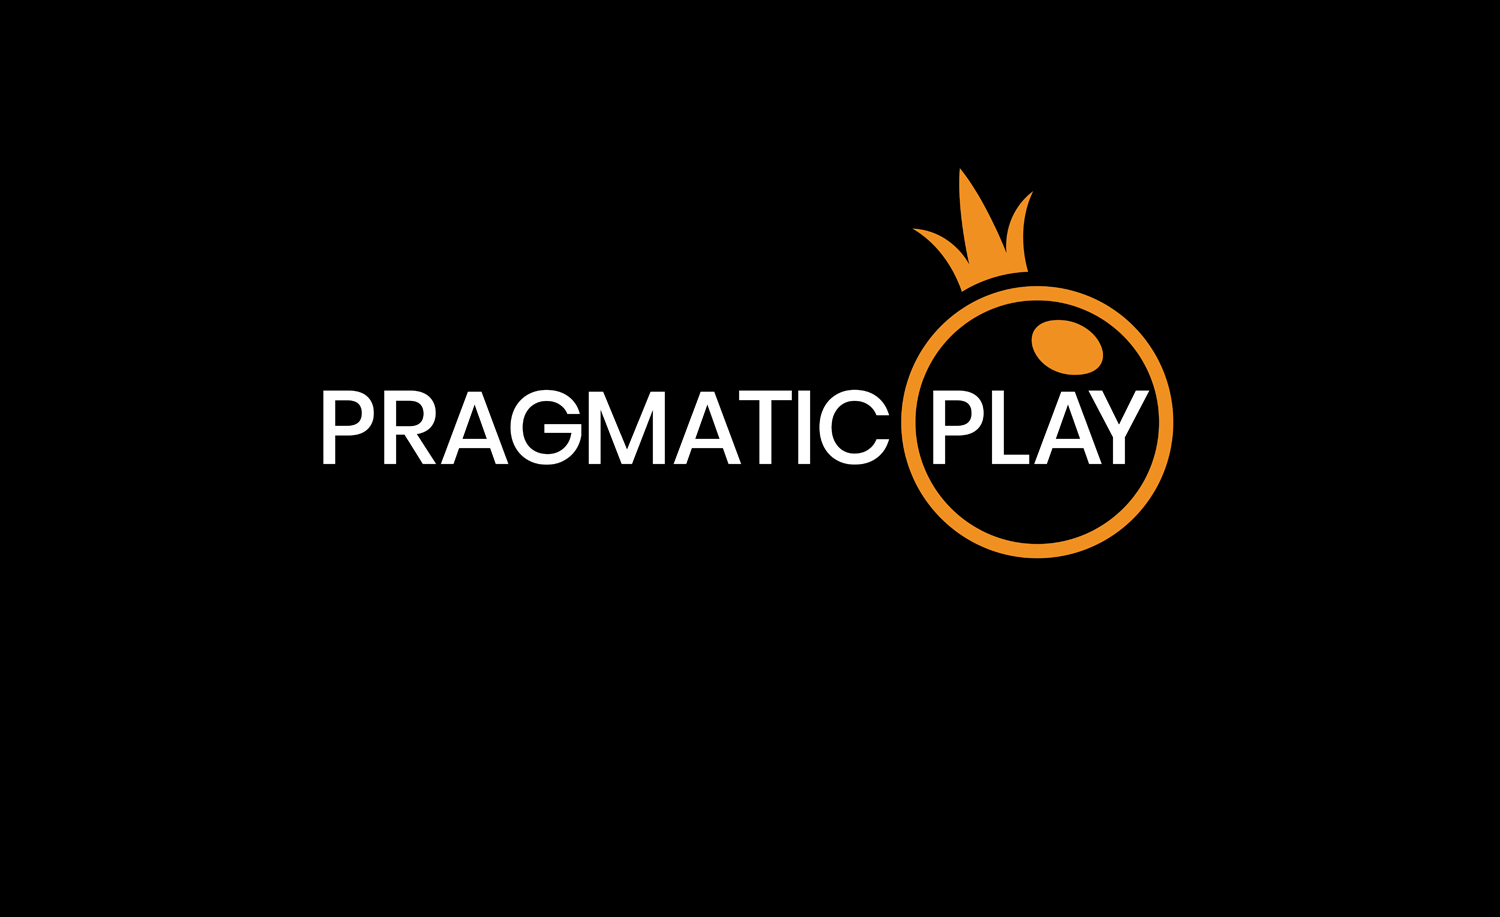 Pragmatic Play Signs Content Distribution Agreement With Betway